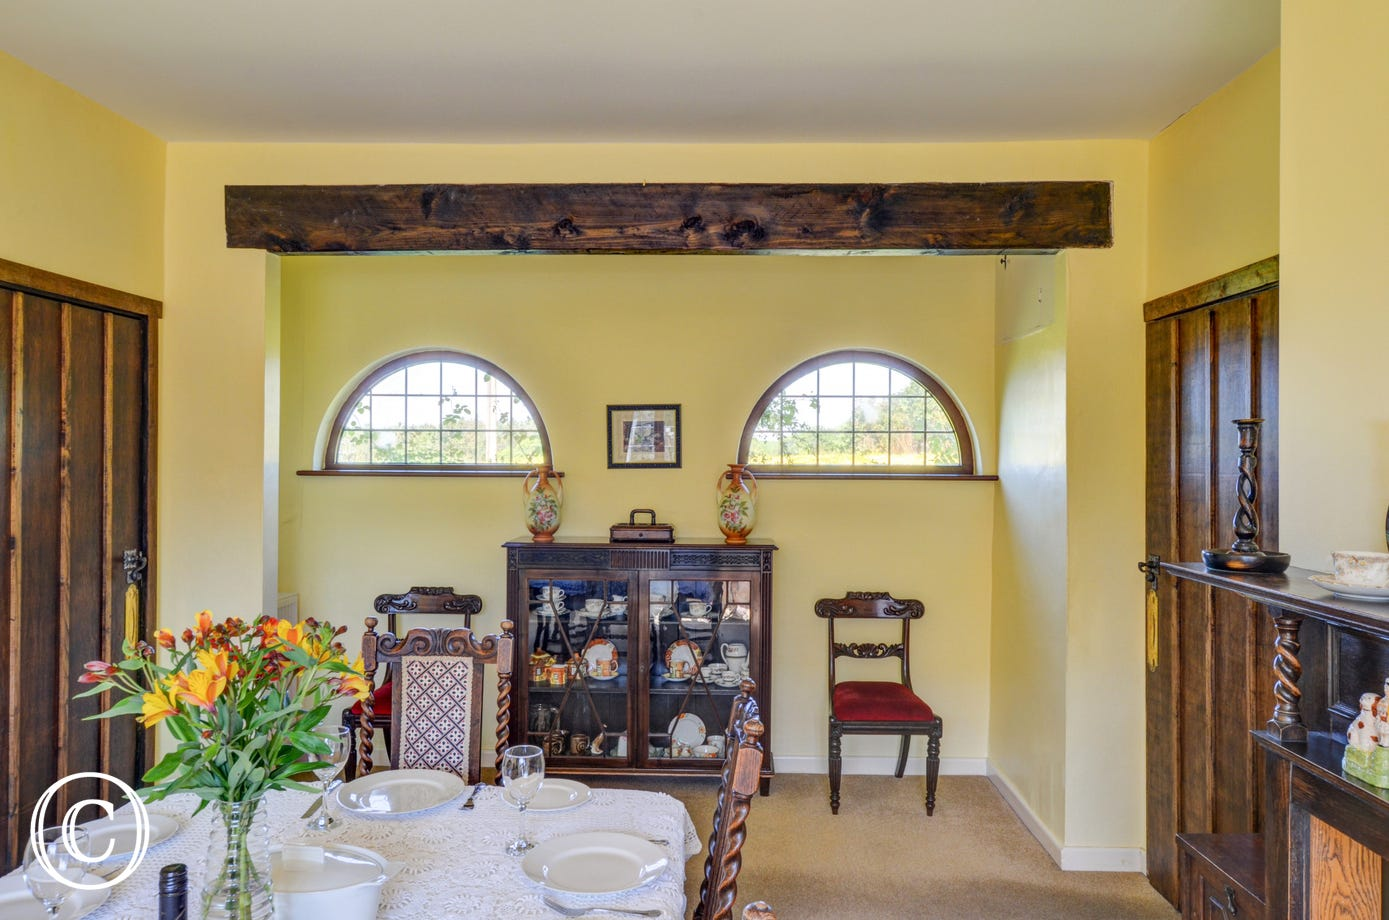 Unusual architectural features in the dining room